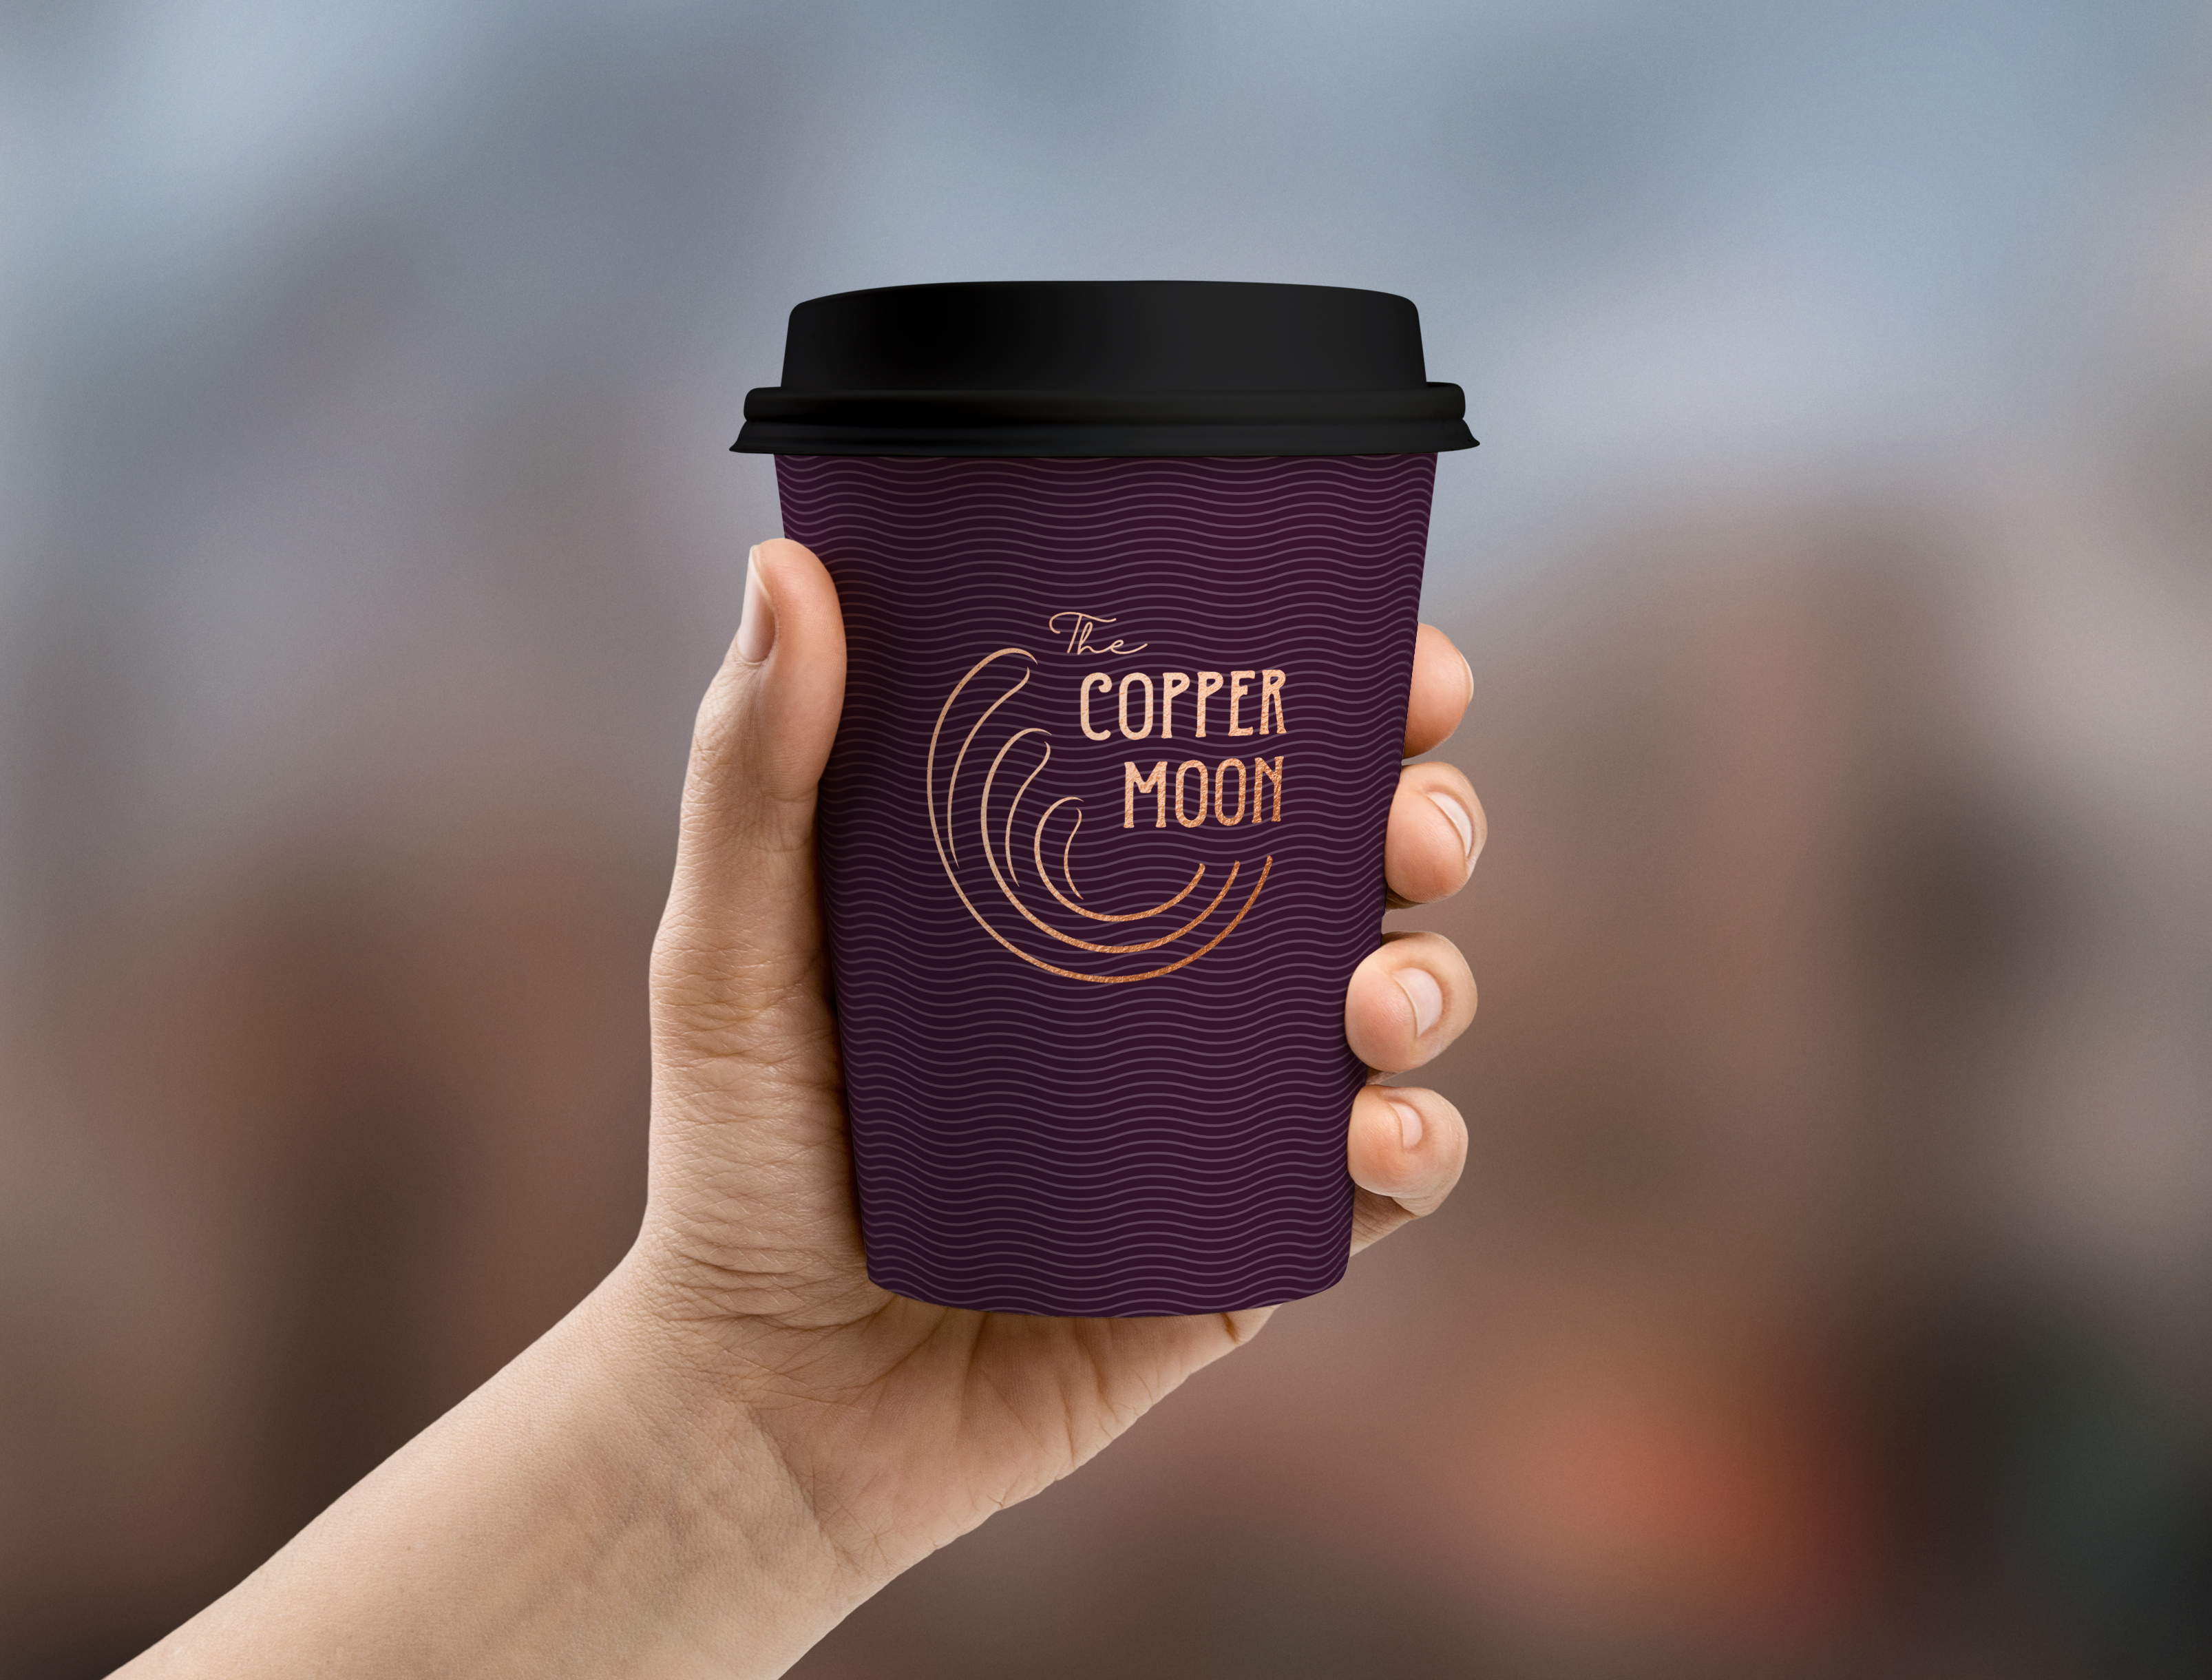 CopperMoon_CoffeeCup_crop